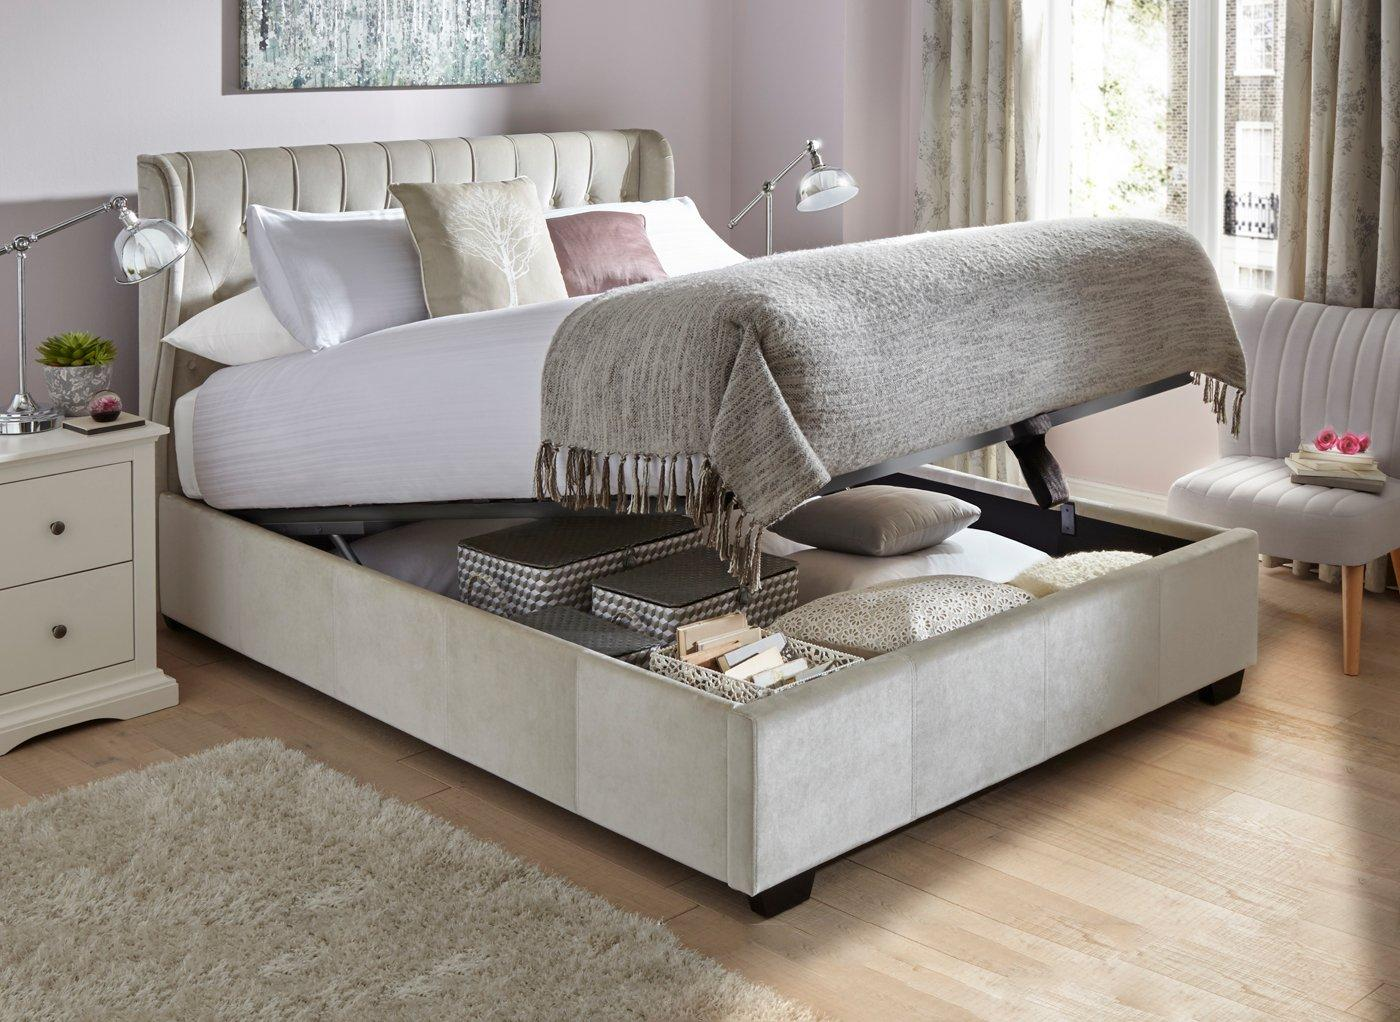 Sale Save Today On Cheap Beds Online Or In Store Dreams